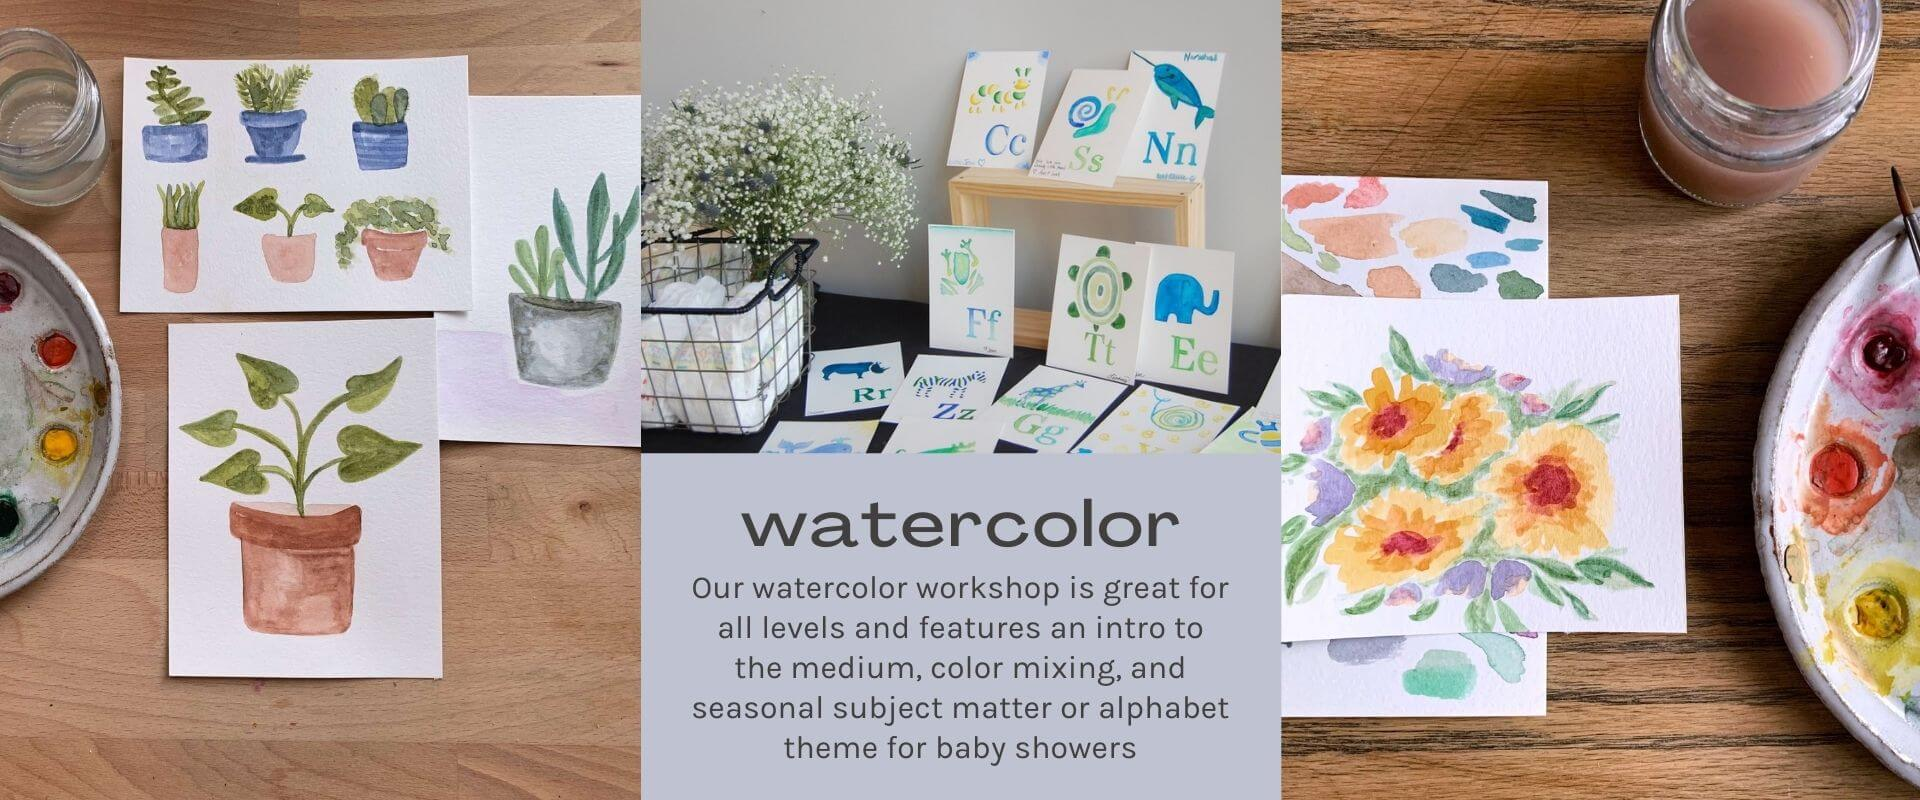 watercolor text on lavender background. watercolor paintings of flowers and plants